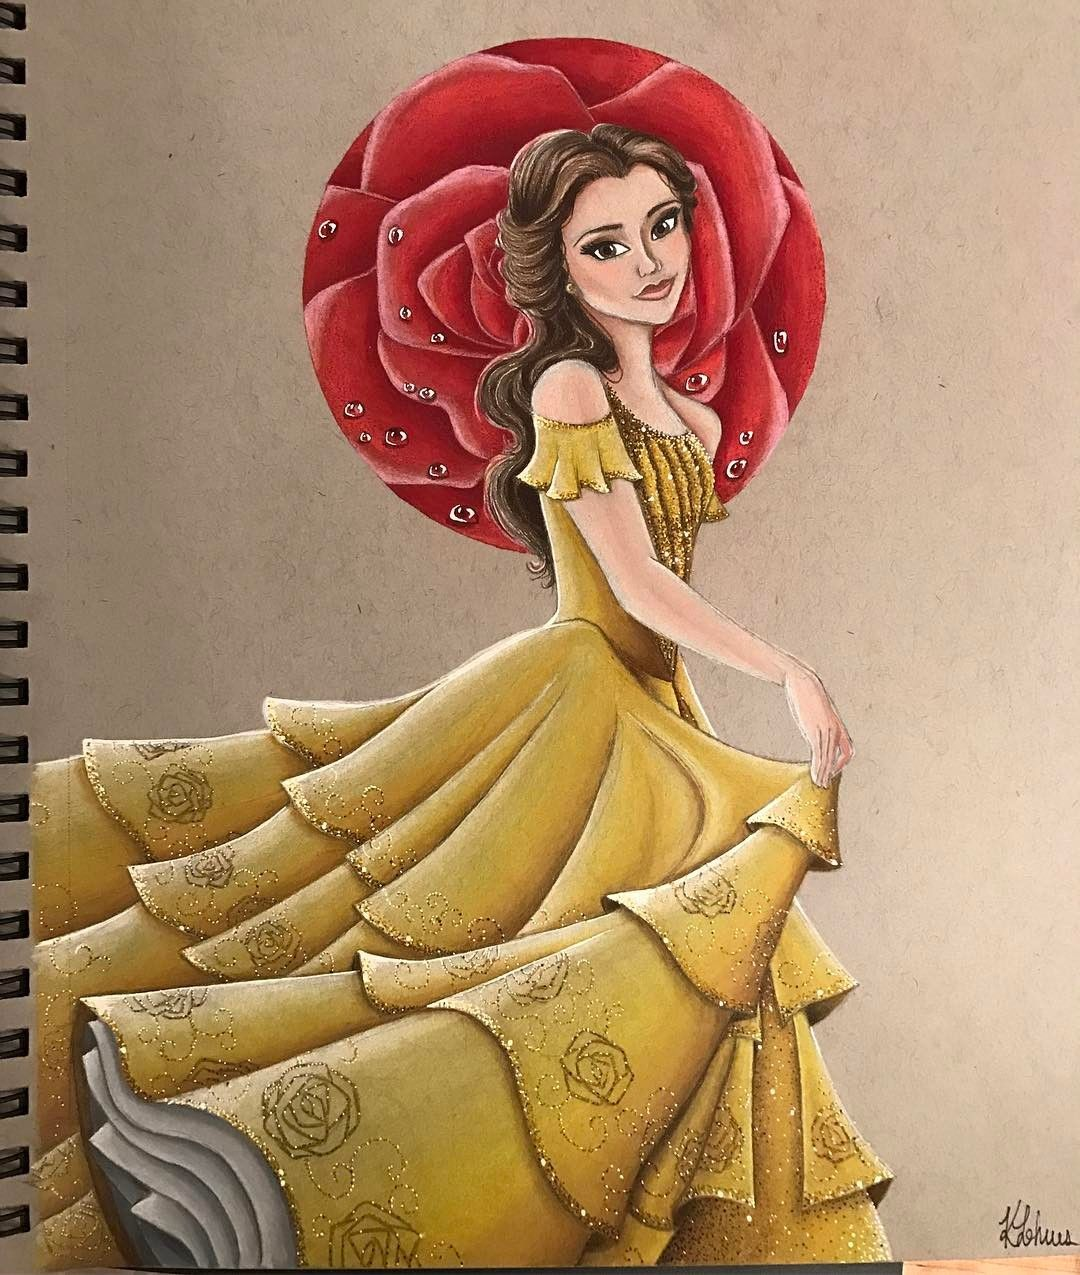 In honor of the new beautyandthebeast movie coming out